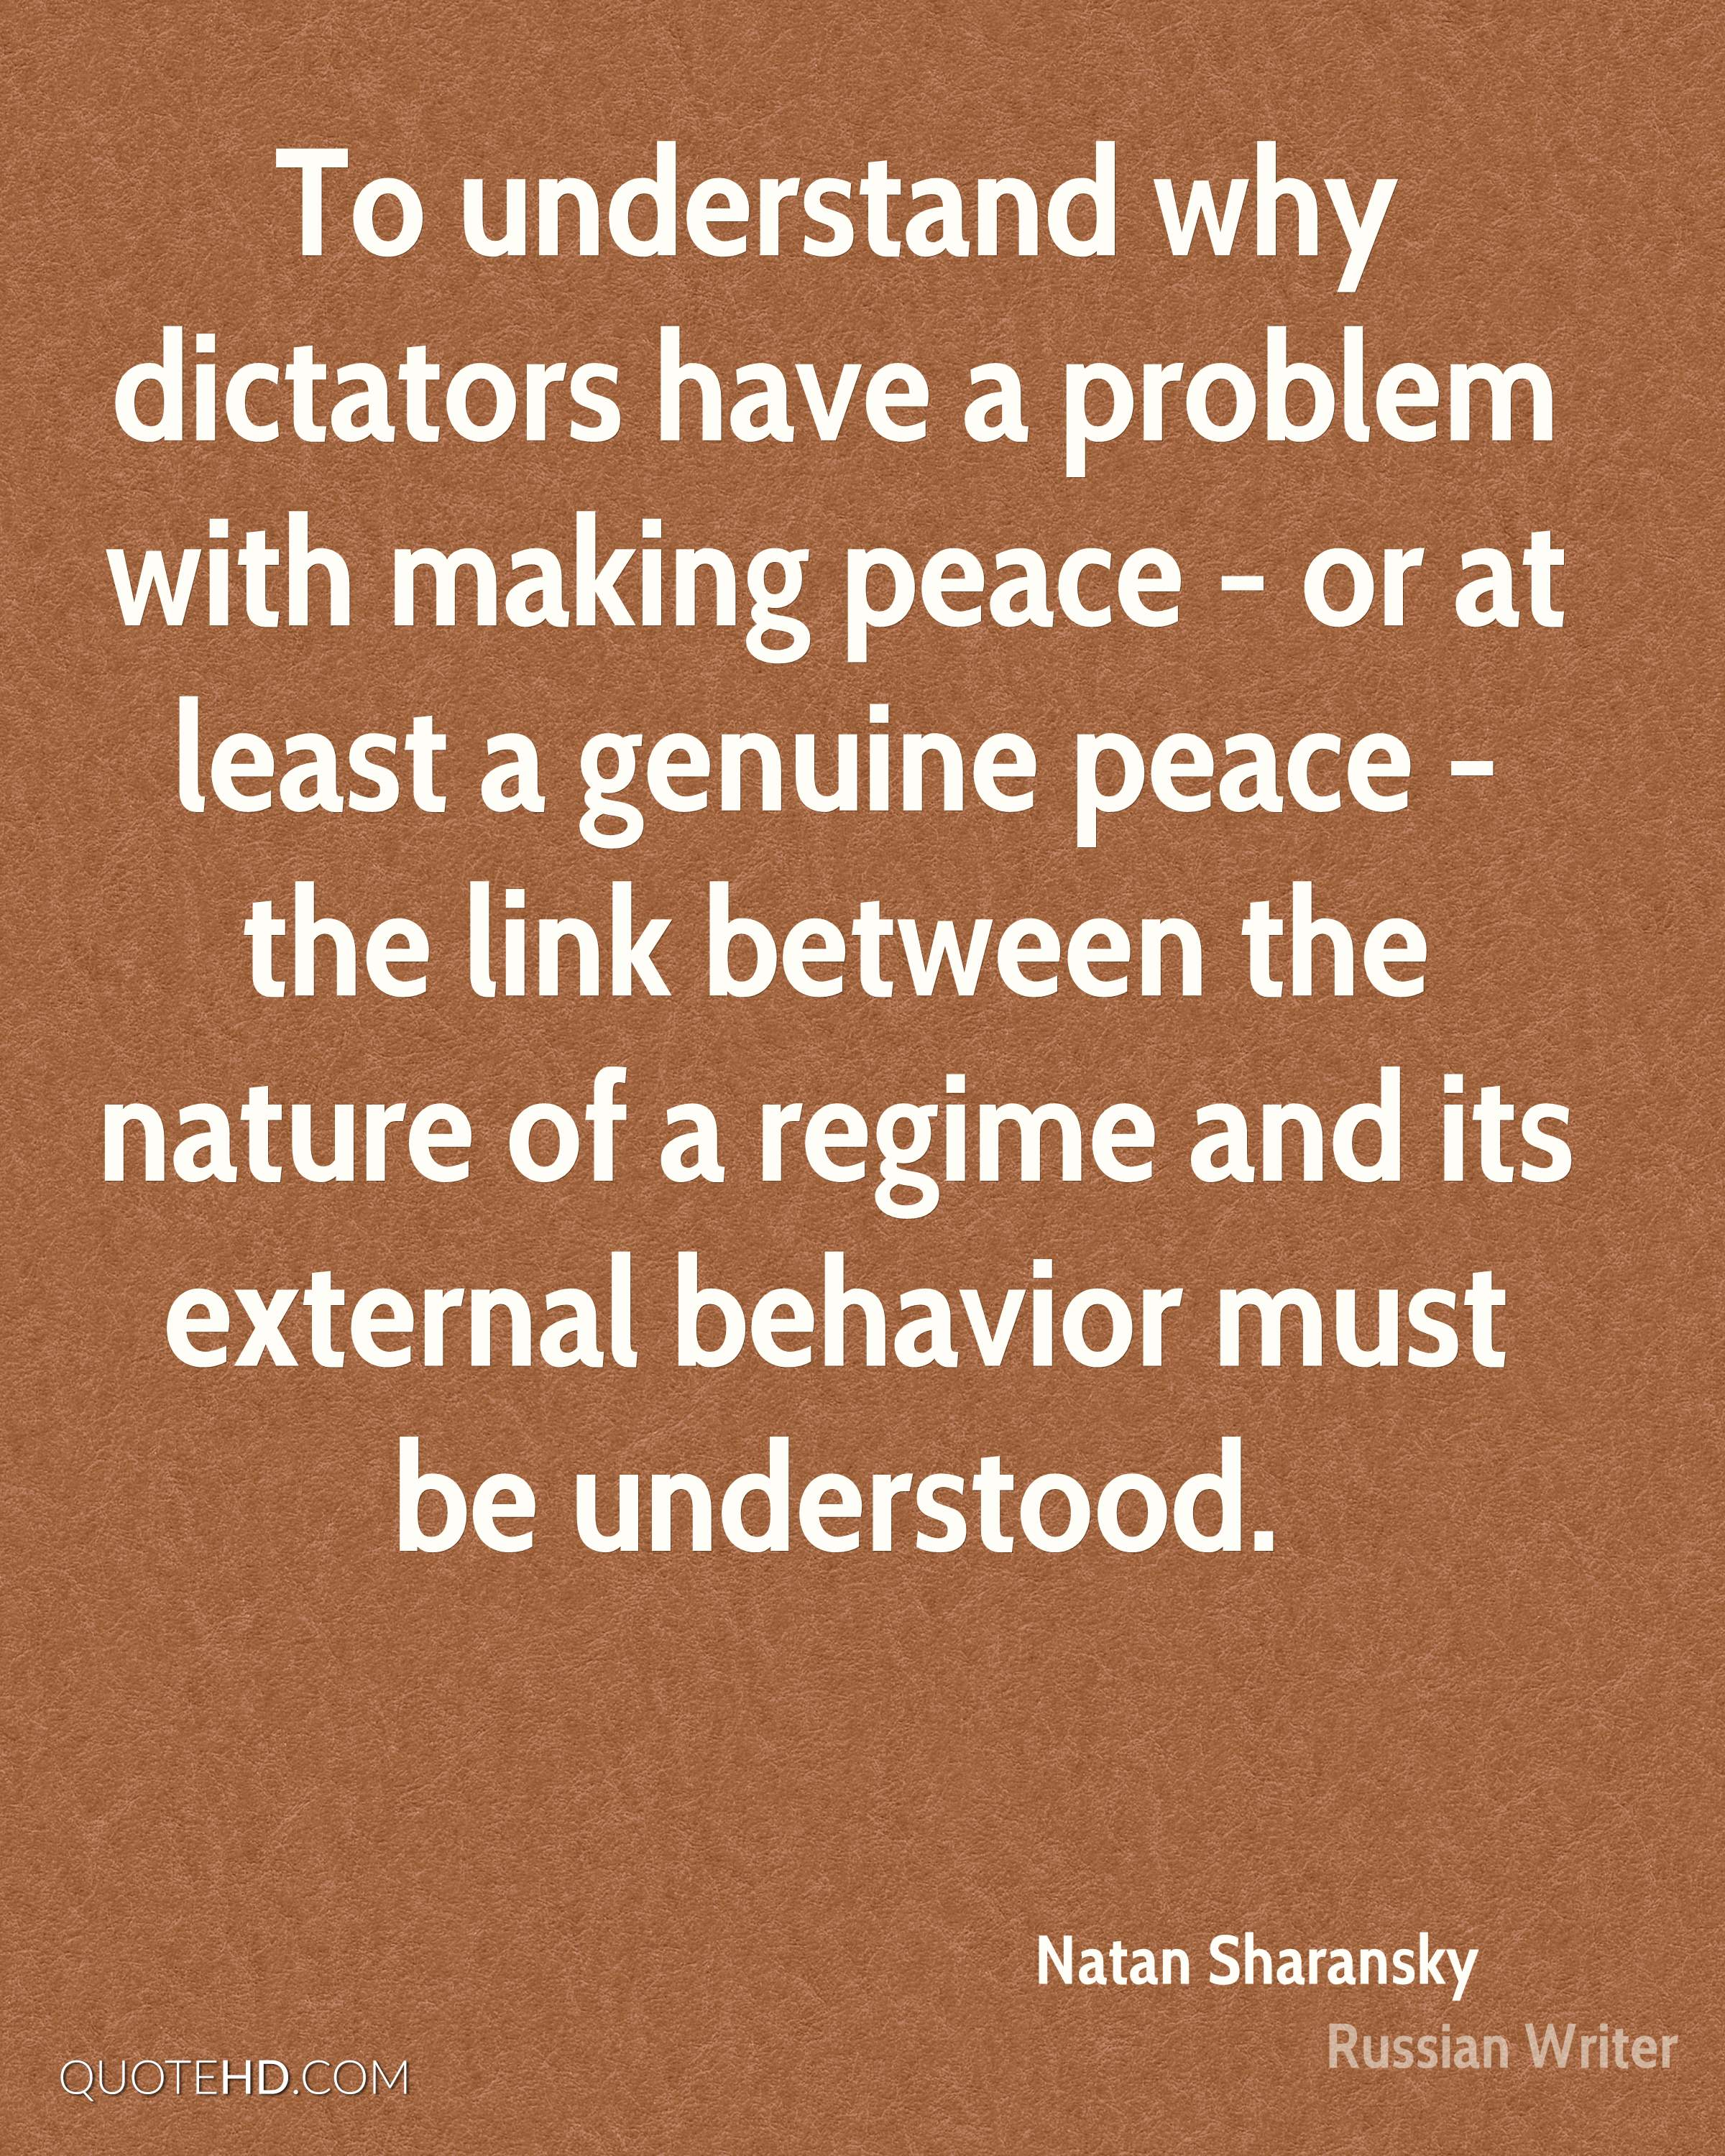 To understand why dictators have a problem with making peace - or at least a genuine peace - the link between the nature of a regime and its external behavior must be understood.